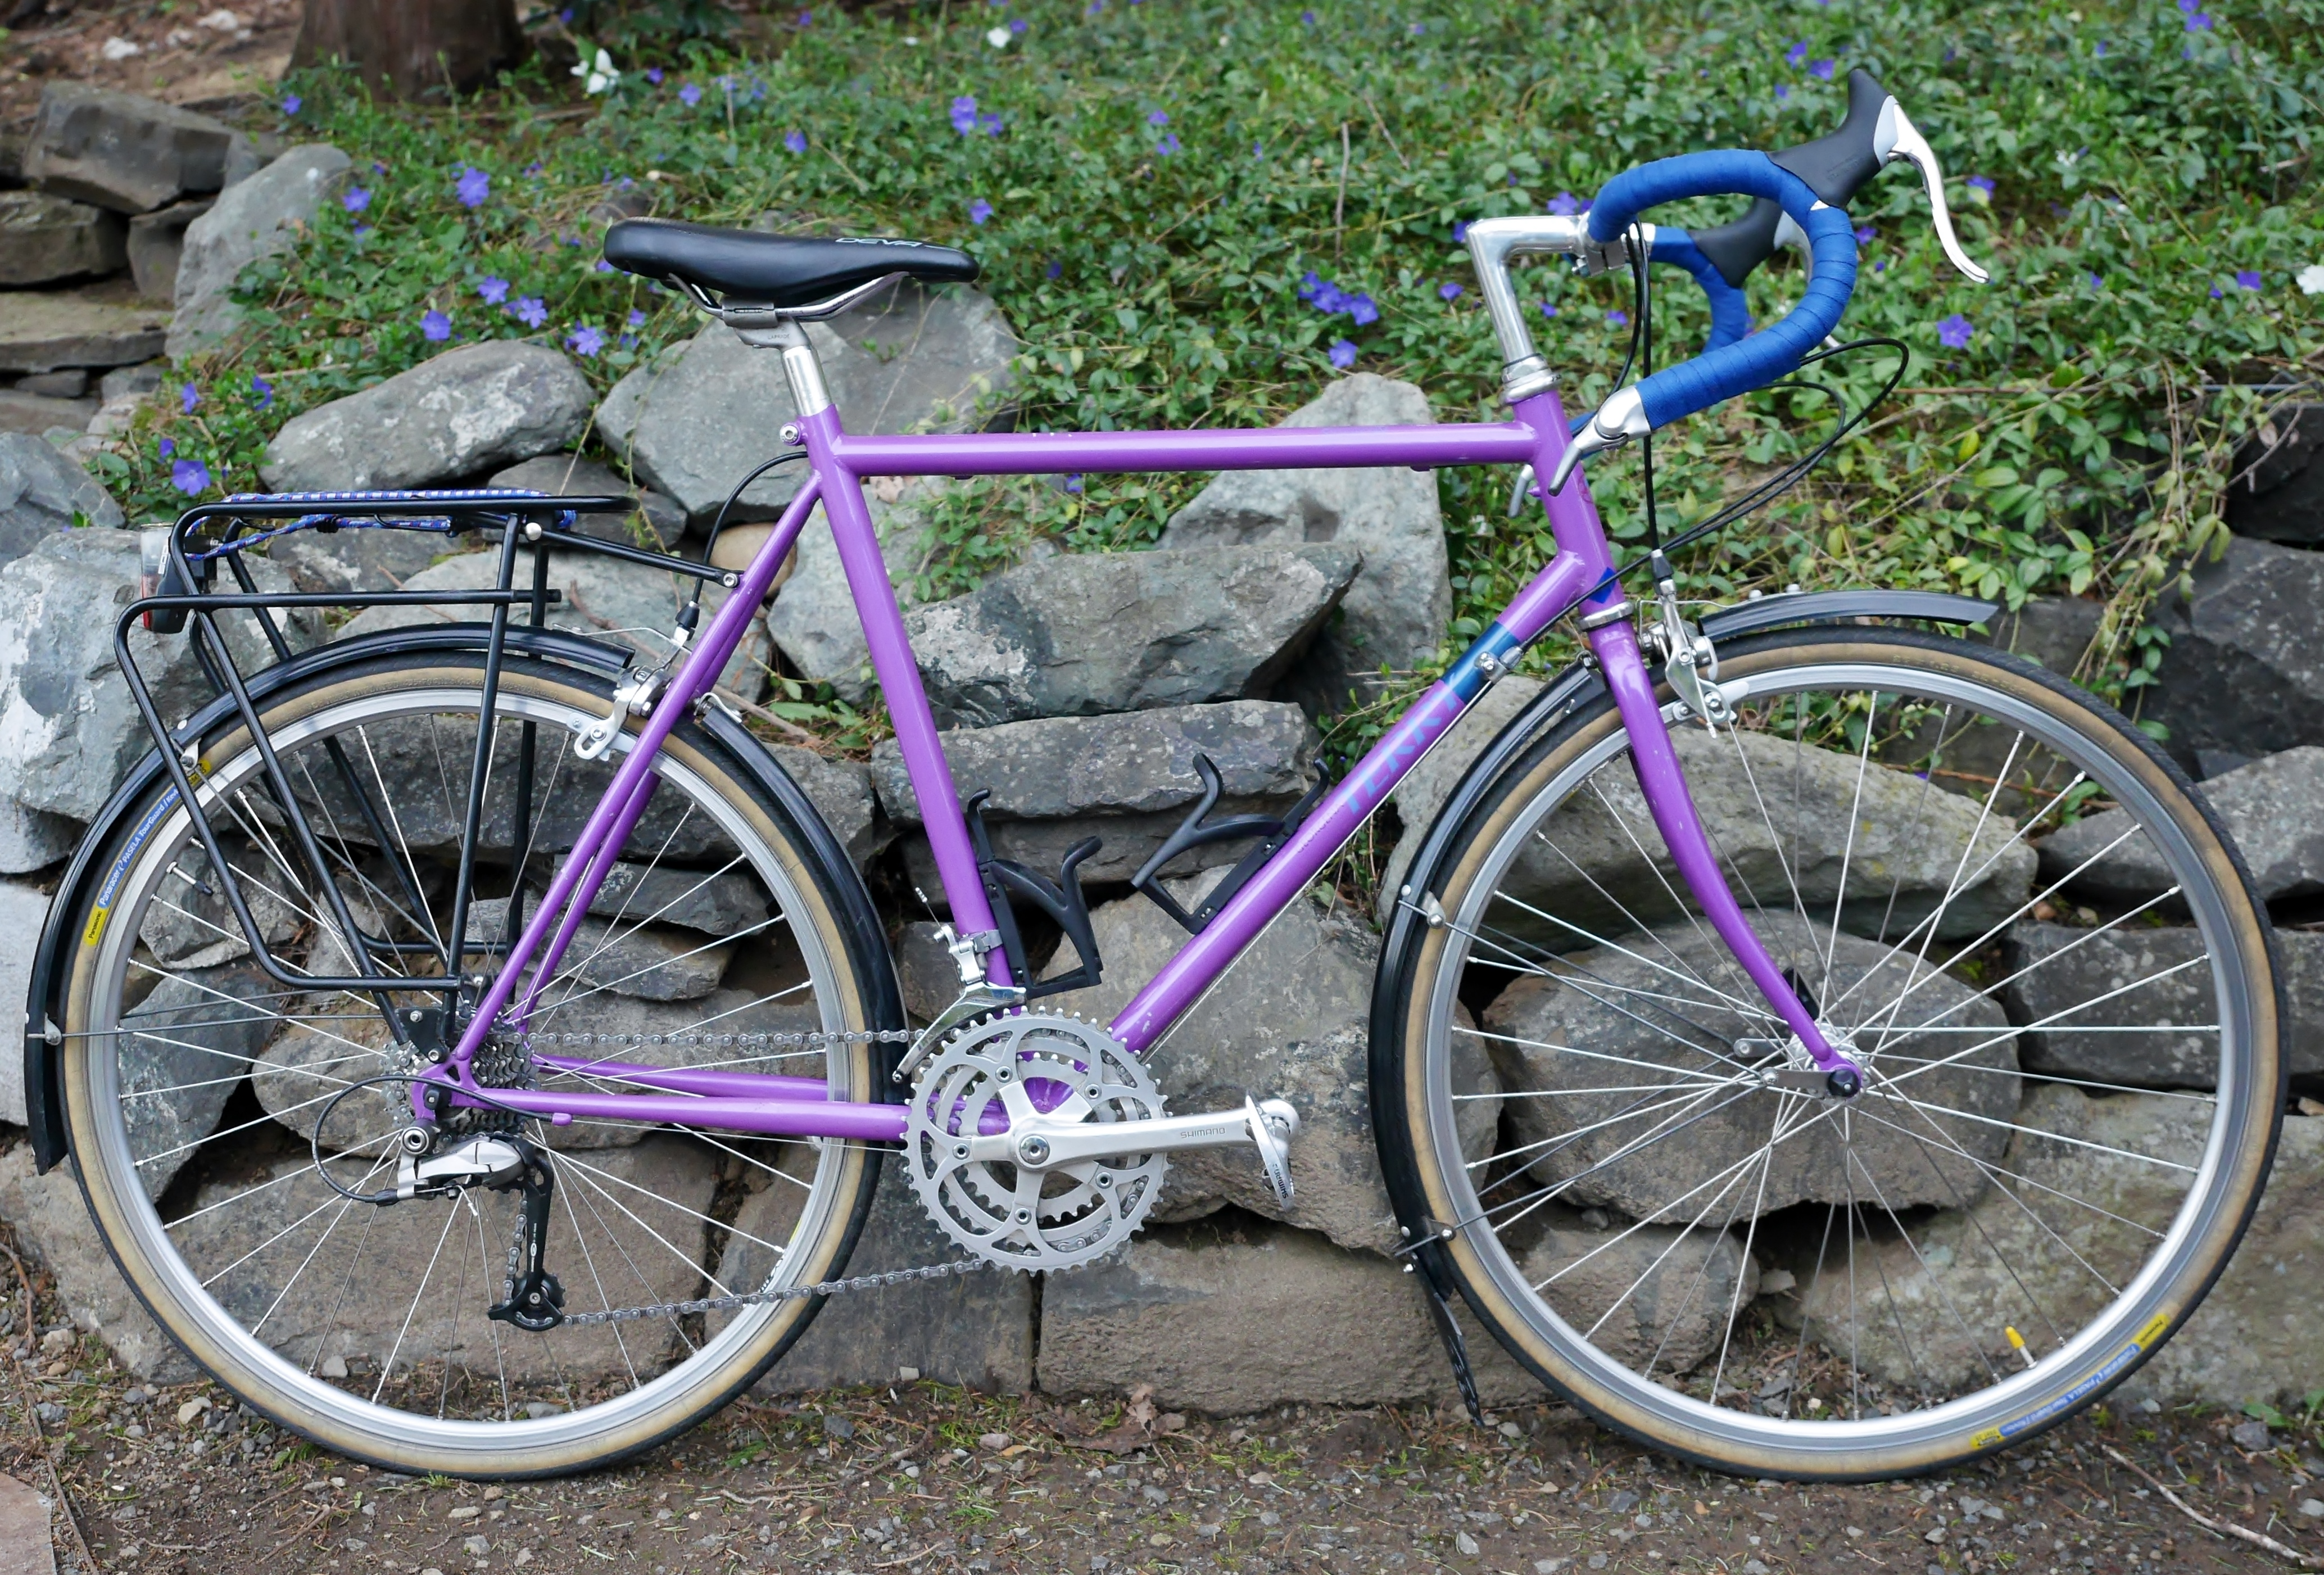 Restoring Vintage Bicycles From The Hand Built Era